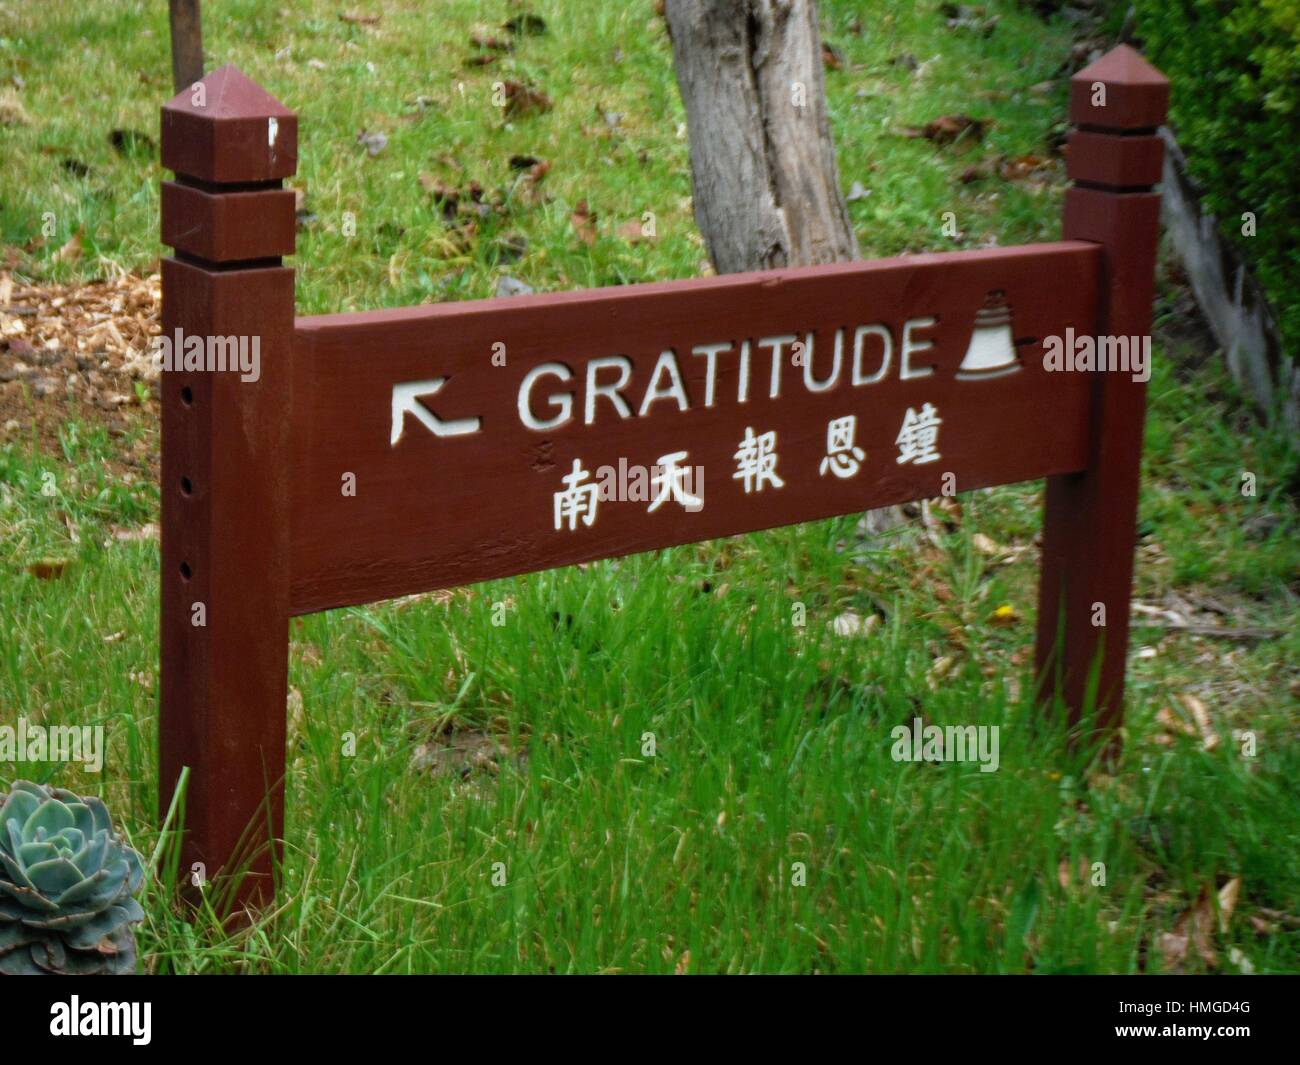 Gratitude sign post - Stock Image